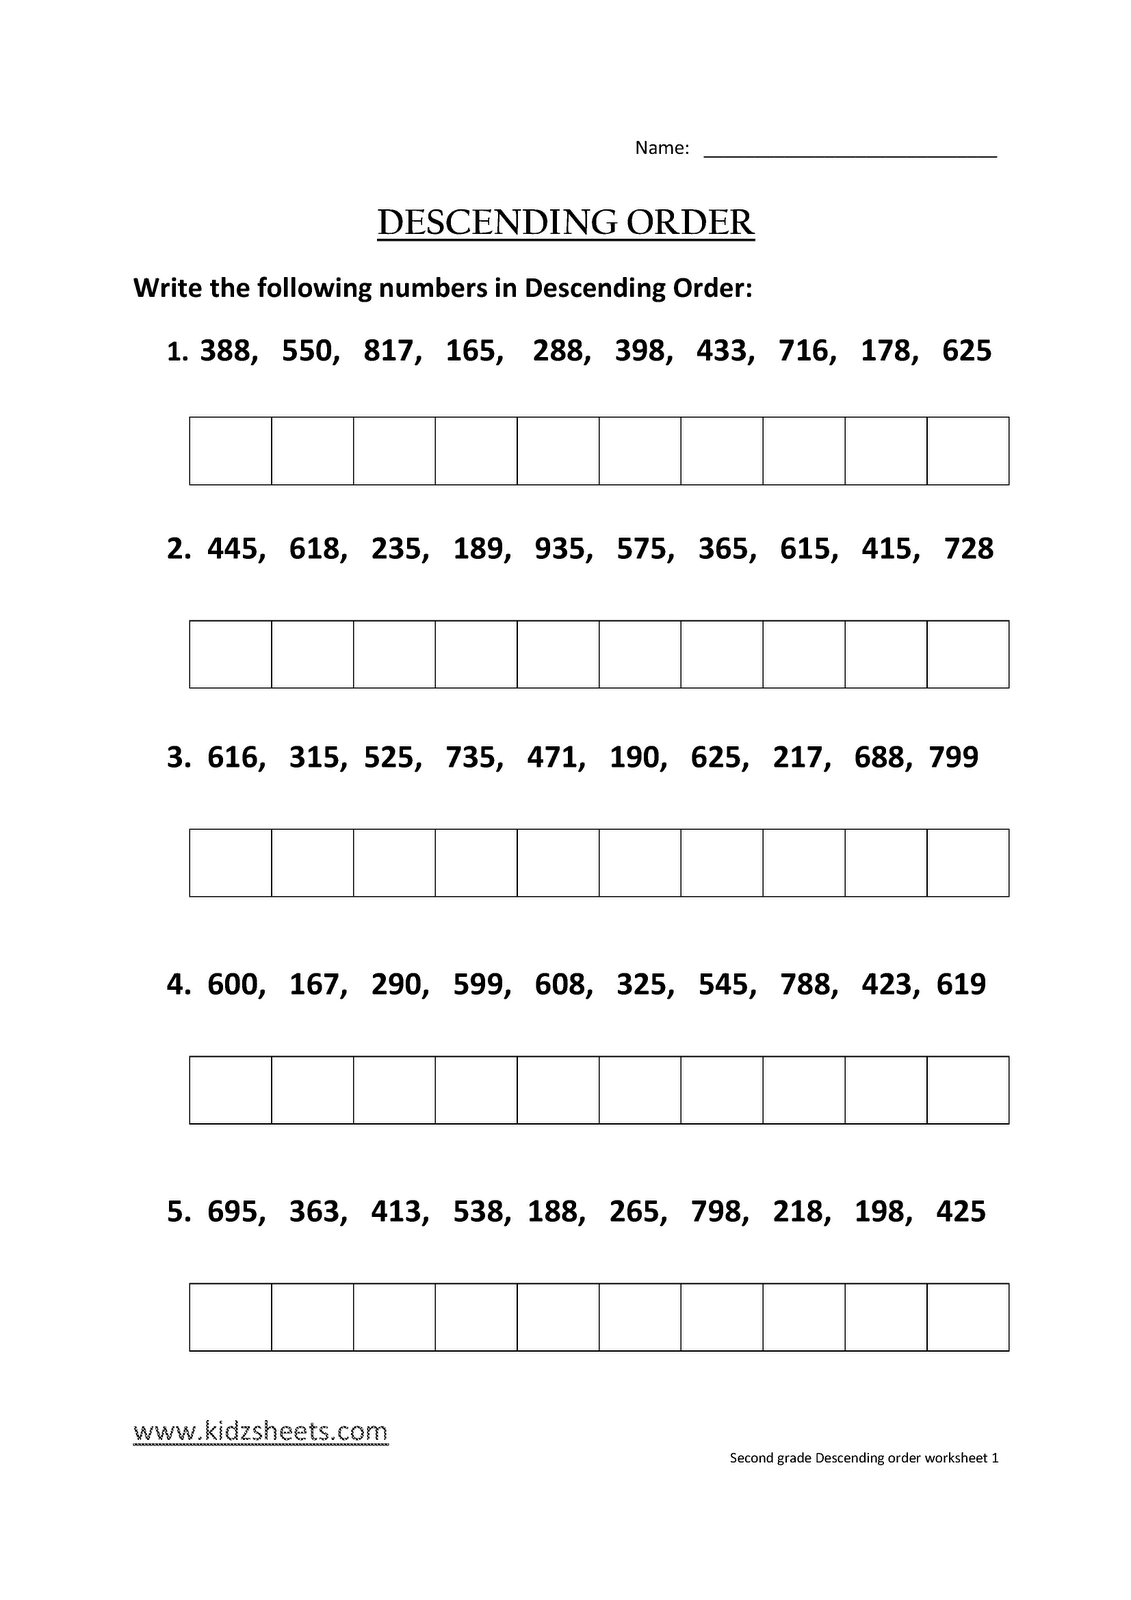 hight resolution of Ascending And Descending Notes Worksheet   Printable Worksheets and  Activities for Teachers